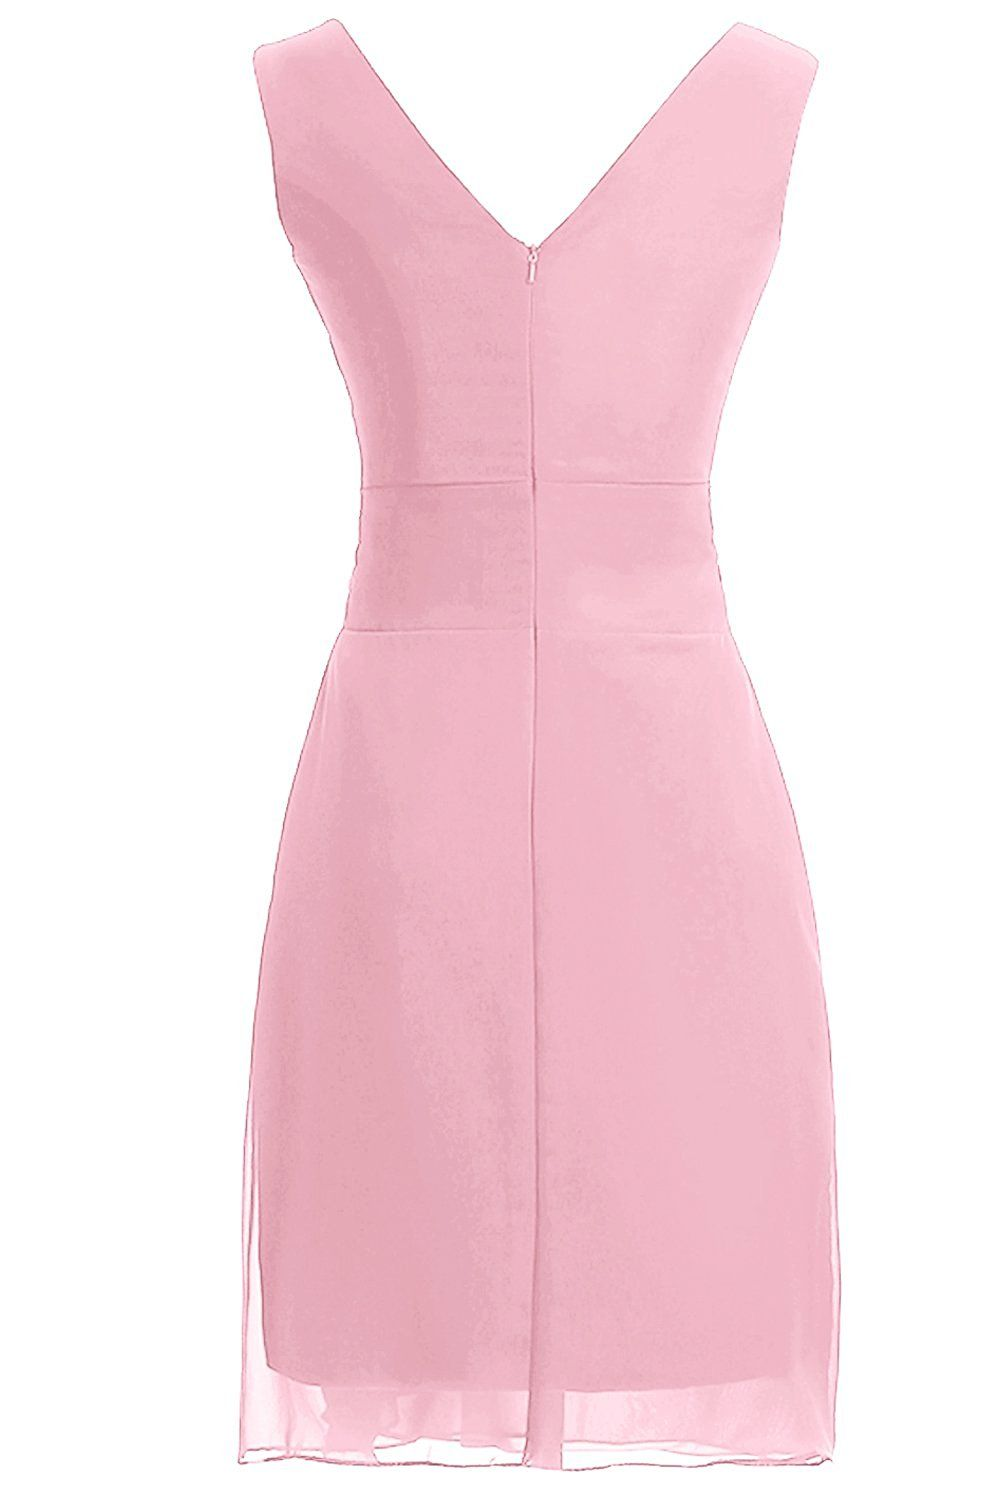 Sunvary 2015 Short Cocktail Dresses Mother of the Bride Dresses ...